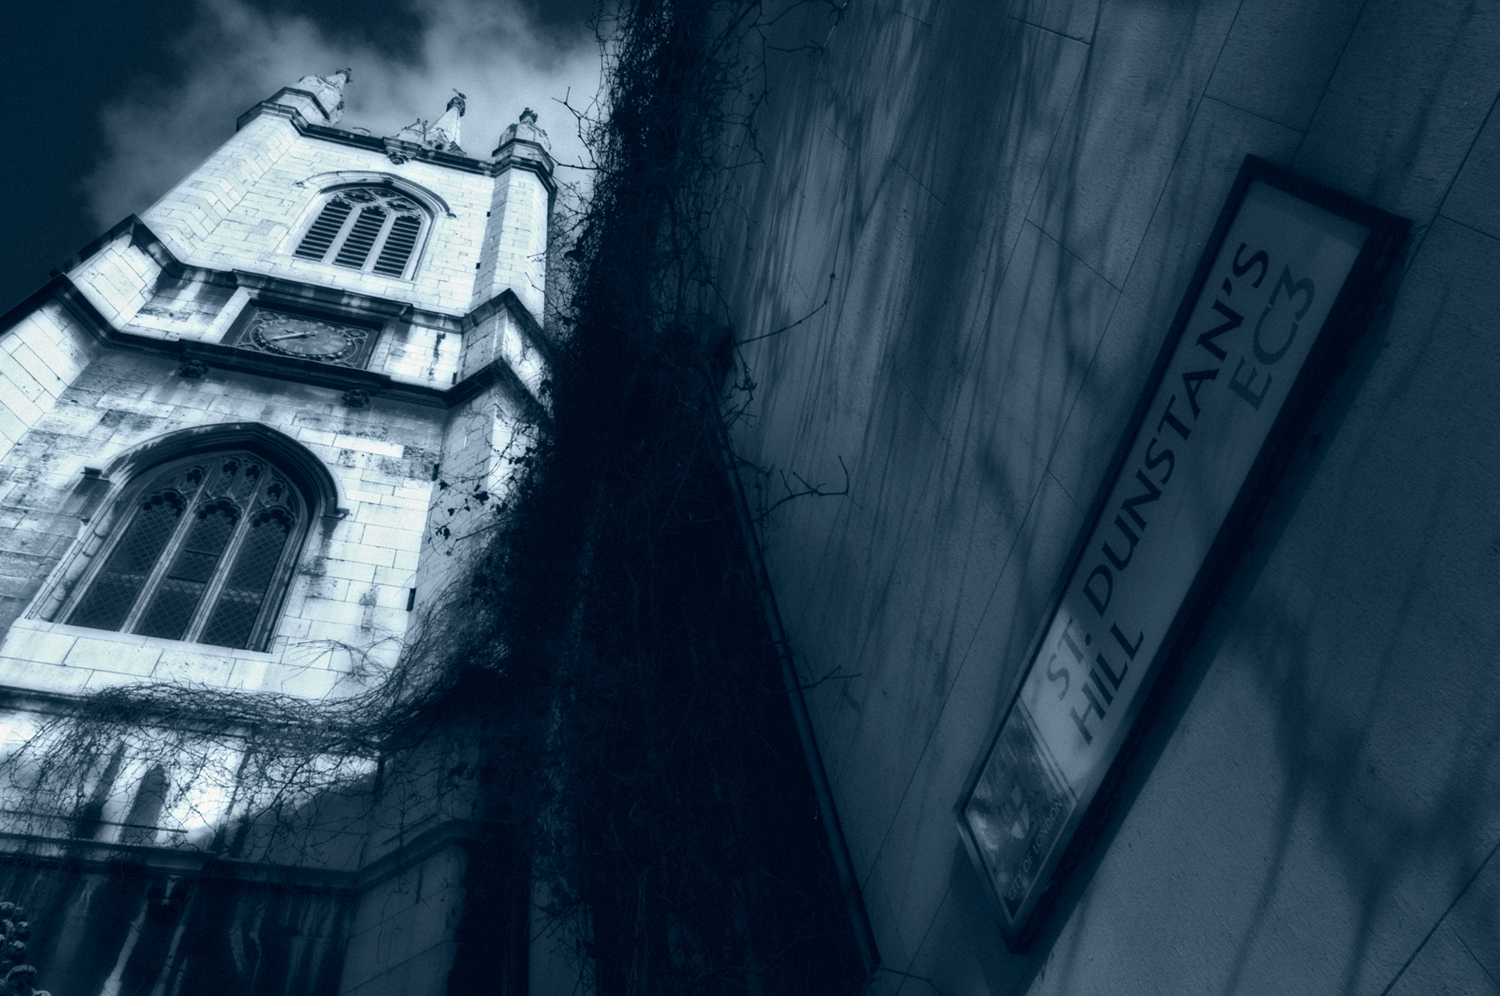 Low angle photography - St Dunstan's Hill in London